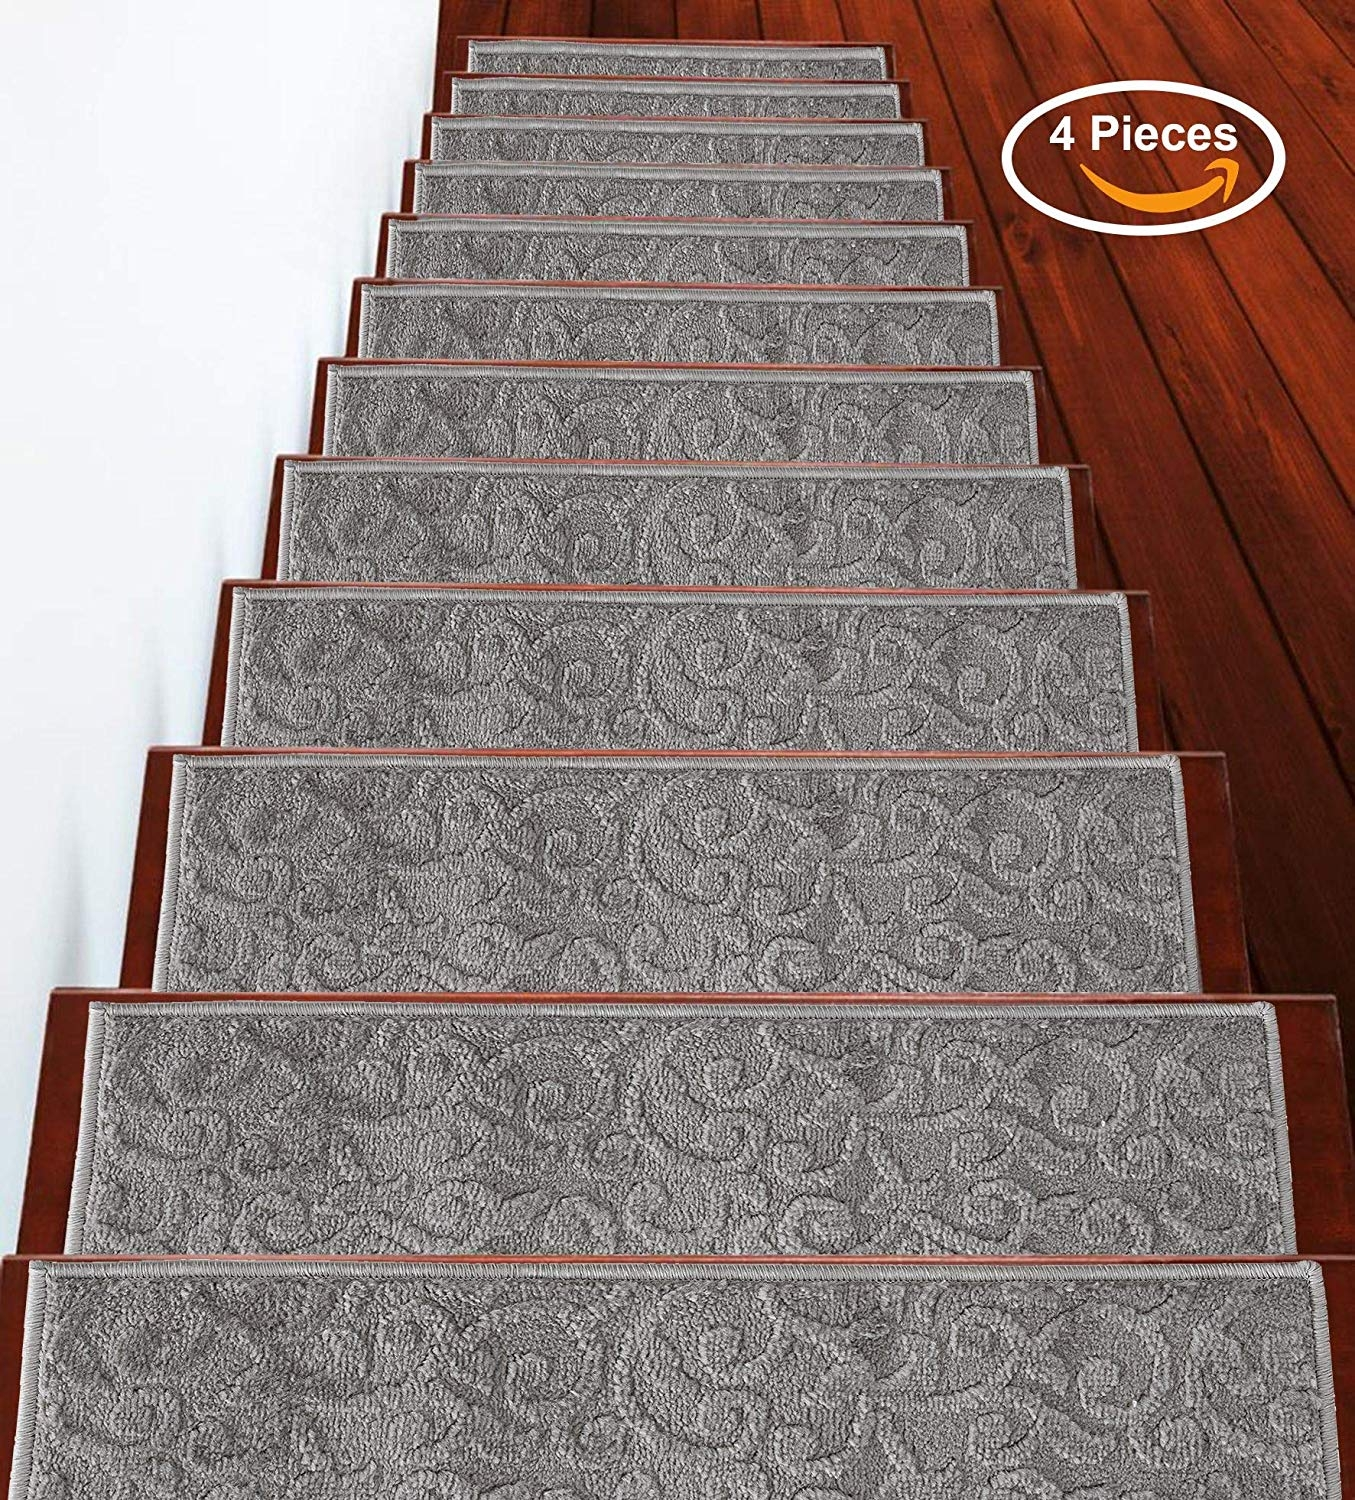 Sussexhome Stair Runner Carpet Stair Treads Carpet Stair Tread   High Traffic Carpet For Stairs   Traditional   Textured   Family Room   Middle Open Concept   Runners